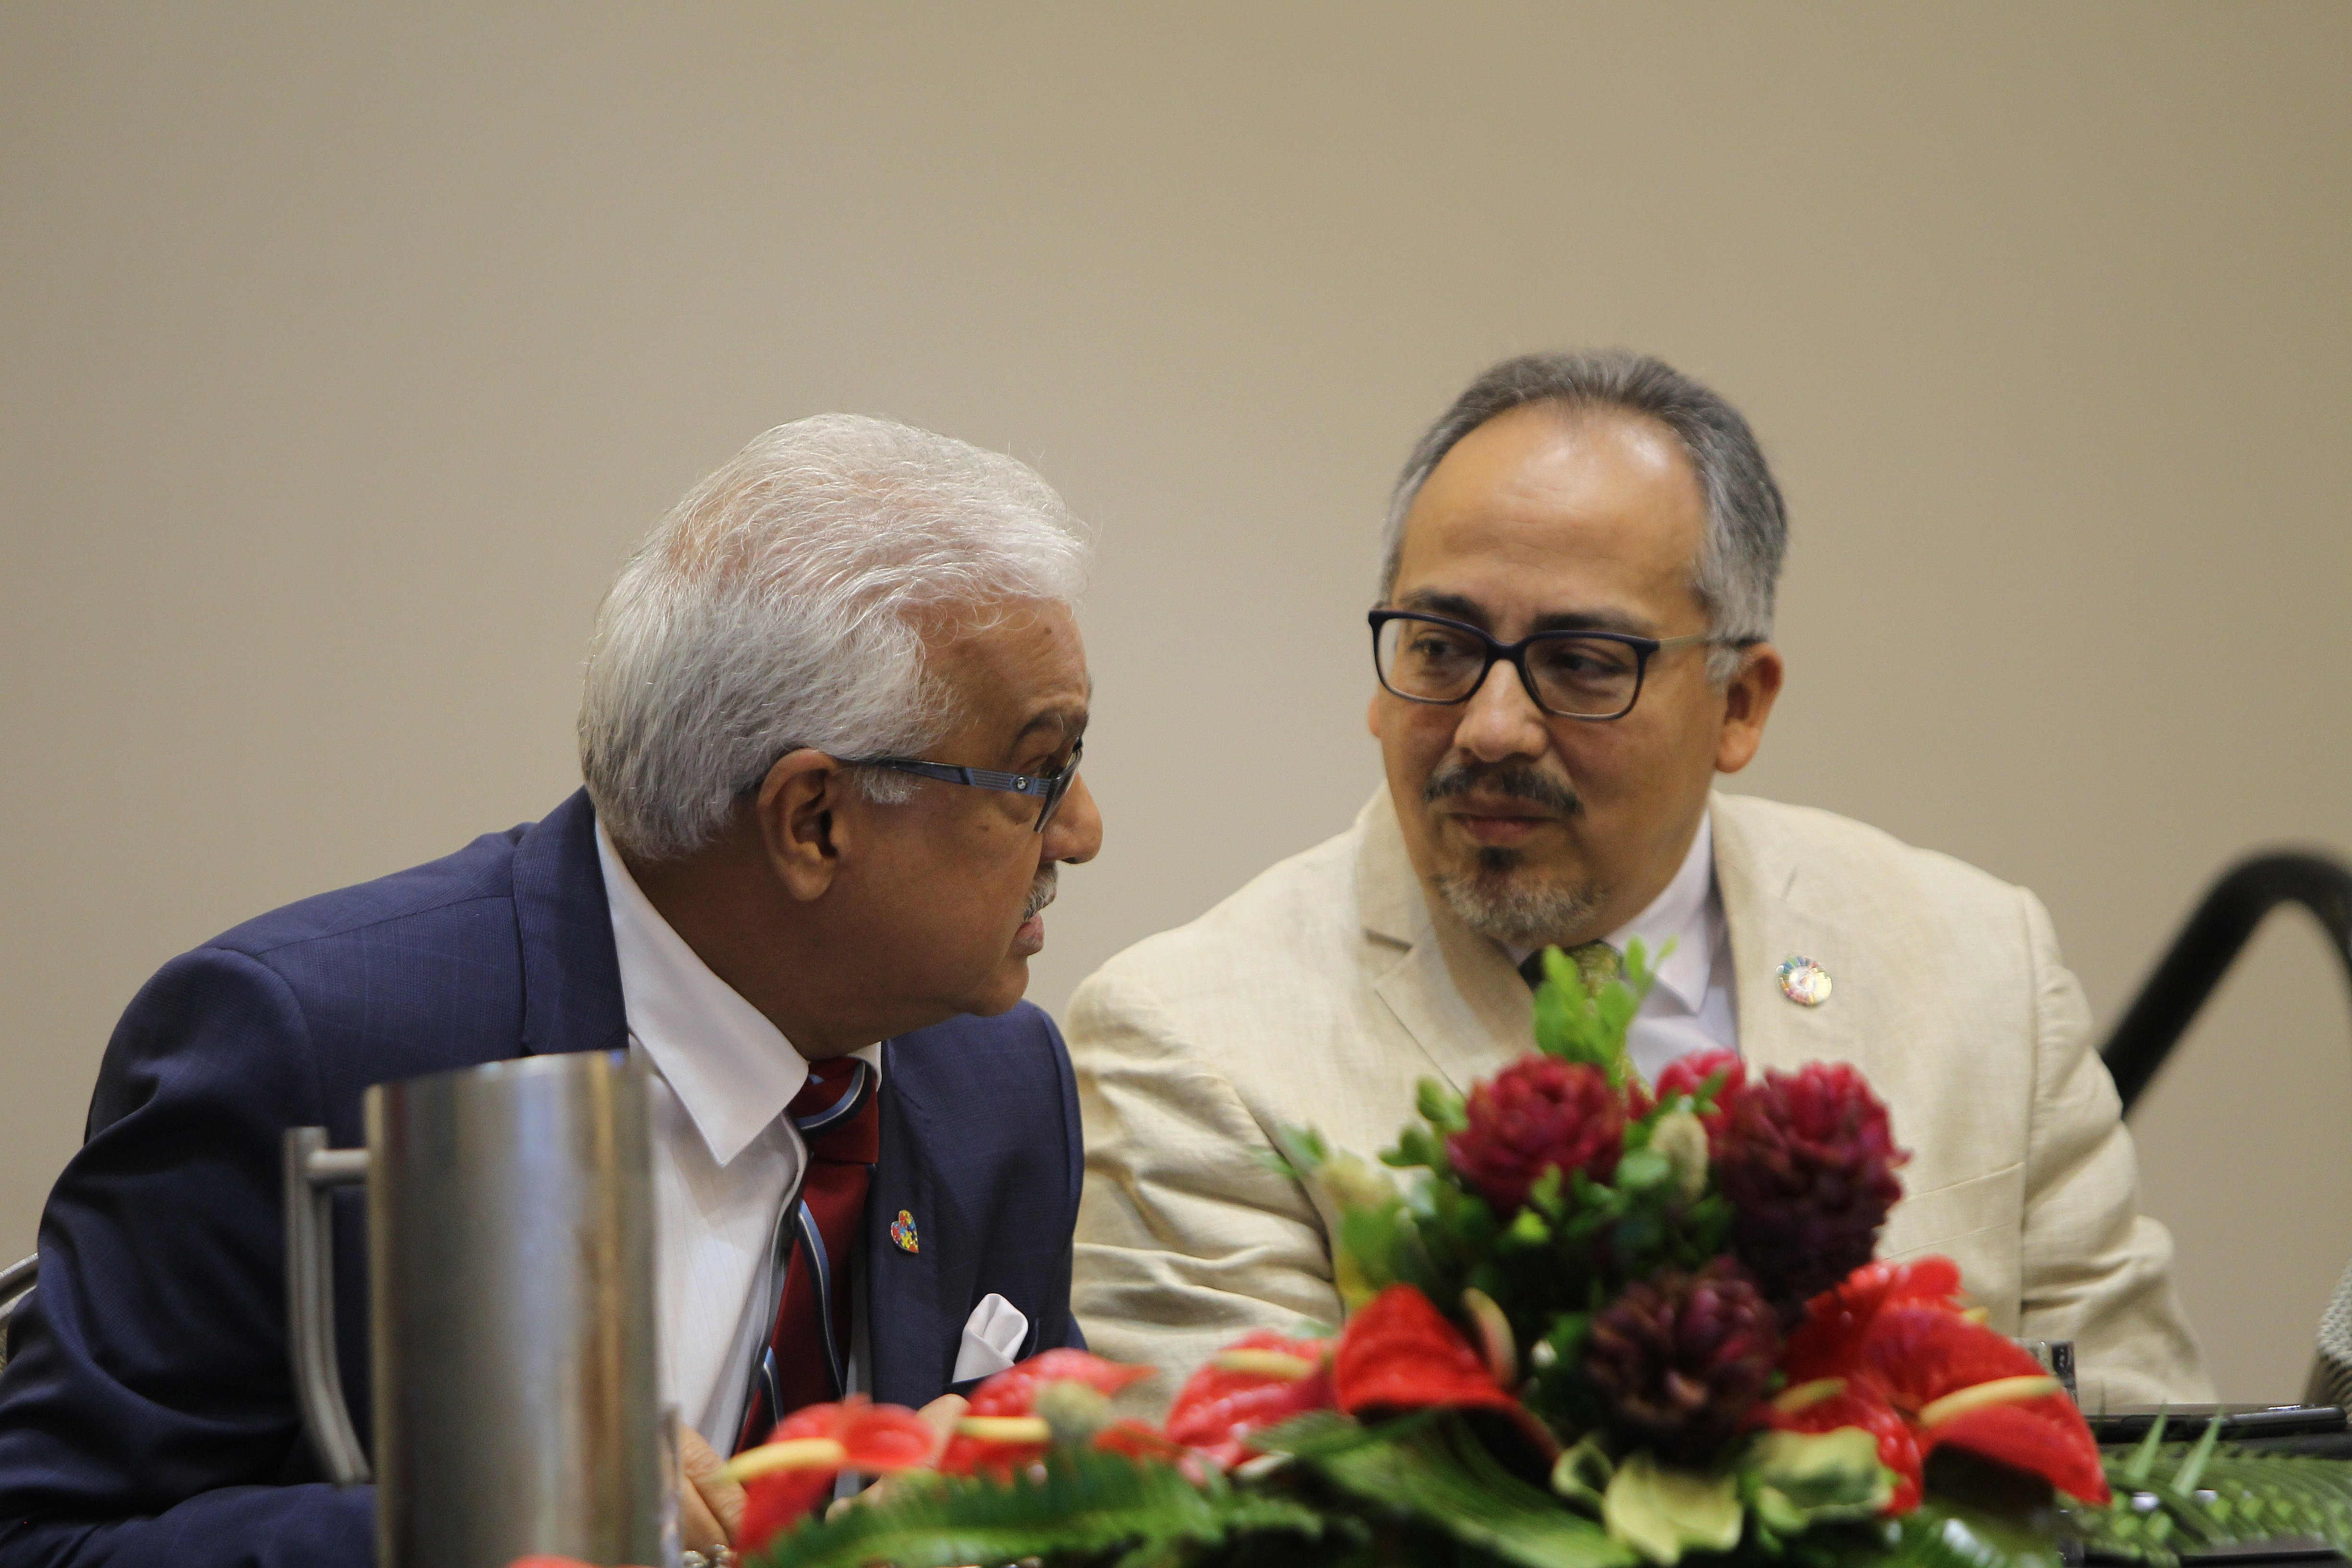 HEALTH TALKS: Health Minister Terrence Deyalsingh, left, and Dr Cesar Nunez, UNAIDS Director for Latin America and the Caribbean, yesterday at 6th Meeting of the National AIDS Programme at the Hyatt Regency in Port of Spain. PHOTO BY RATTAN JADOO